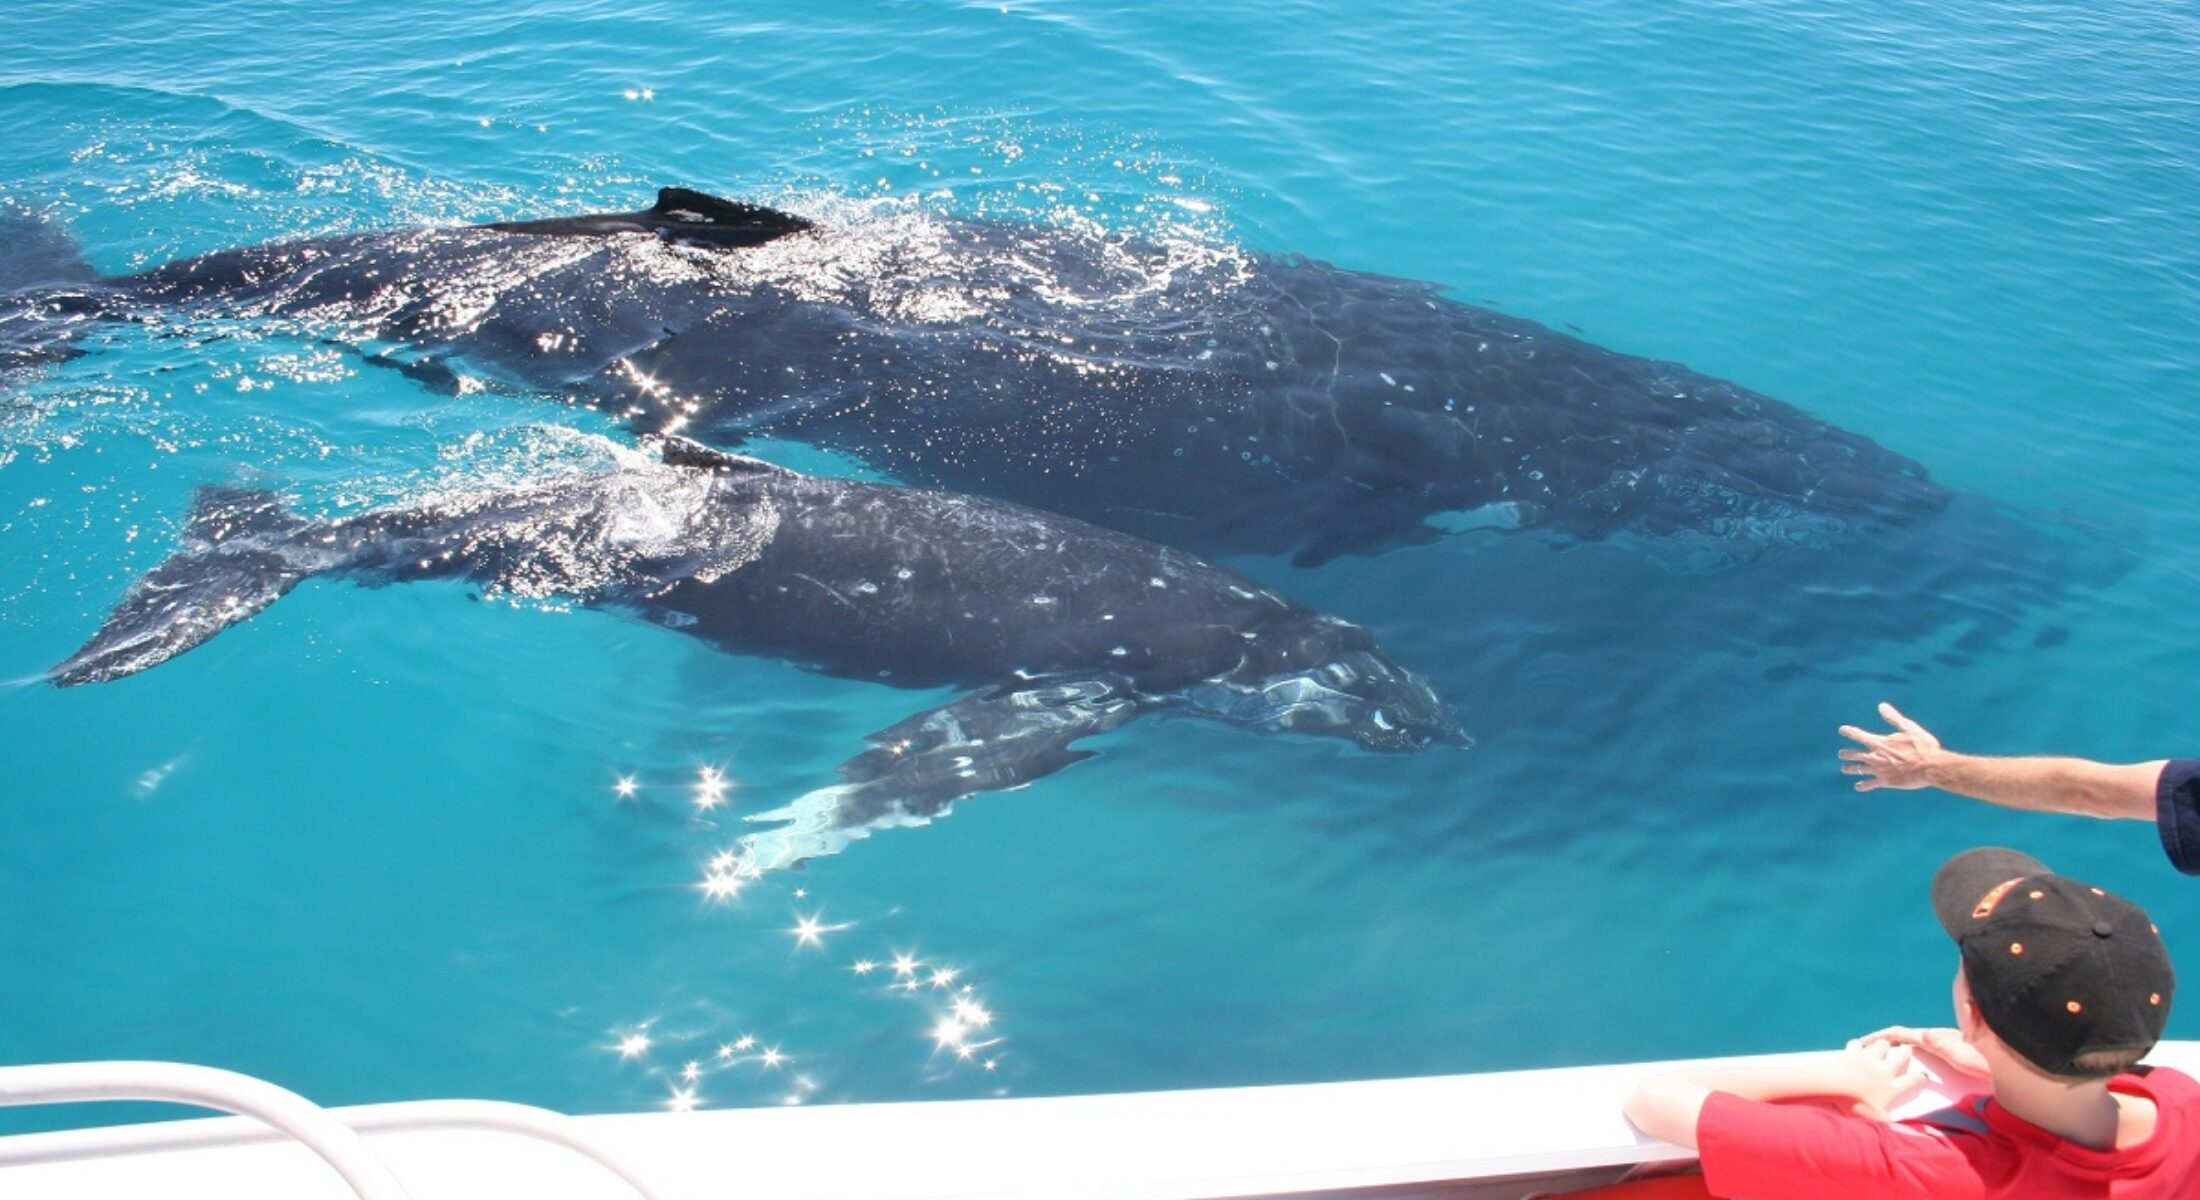 Brisbane Whale Watching Whales Encounters Moreton Bay Region